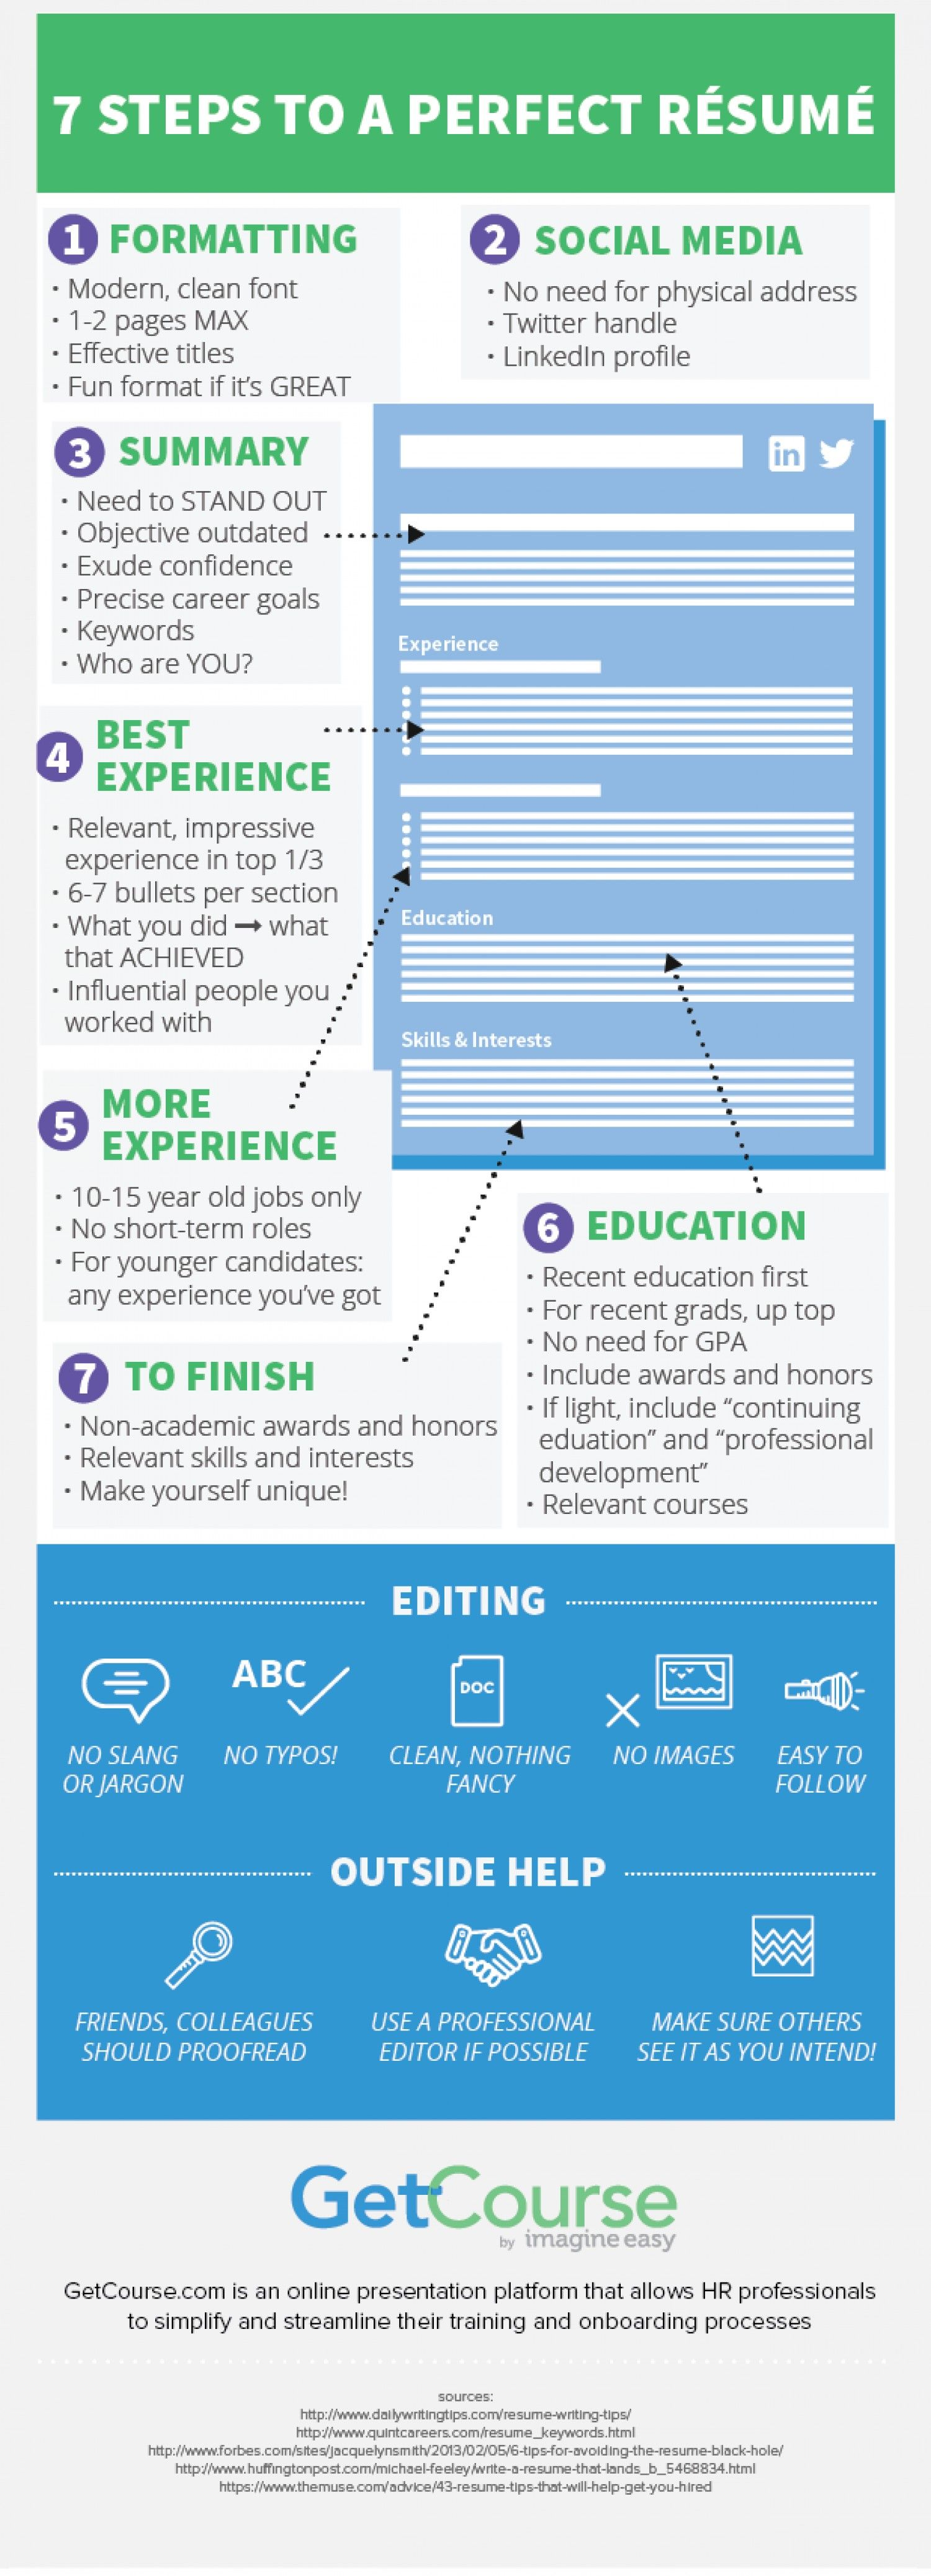 How To Make A Perfect Resume Step By Step Gorgeous 7 Steps To A Perfect #resume #careers  Career Girl  Pinterest .